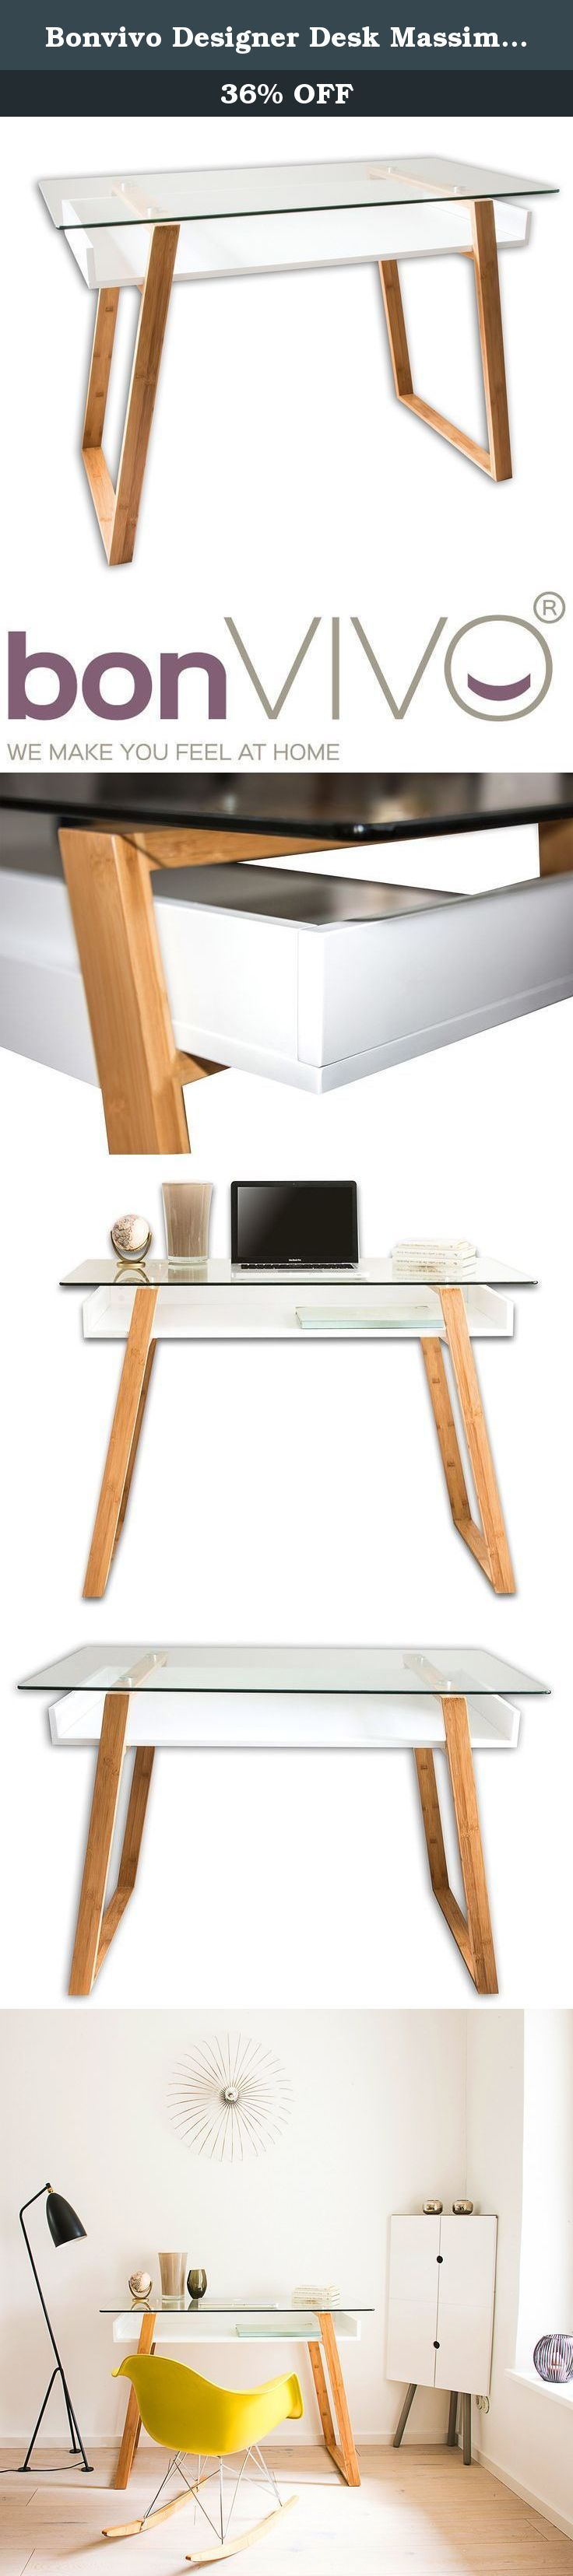 Bonvivo Designer Desk Massimo, Modern Secretary In A Contemporary Design. BonVIVO® stands for modern furnishings and lifestyle concepts for individualists who value quality and intelligent contemporary design. BonVIVO® brand furniture offers trendsetting design with classic style and timeless versatility. With MASSIMO you have the ideal piece of furniture for your home office. Whether as a desk in the study, secretary in the living room, or console in the foyer, MASSIMO is a real…